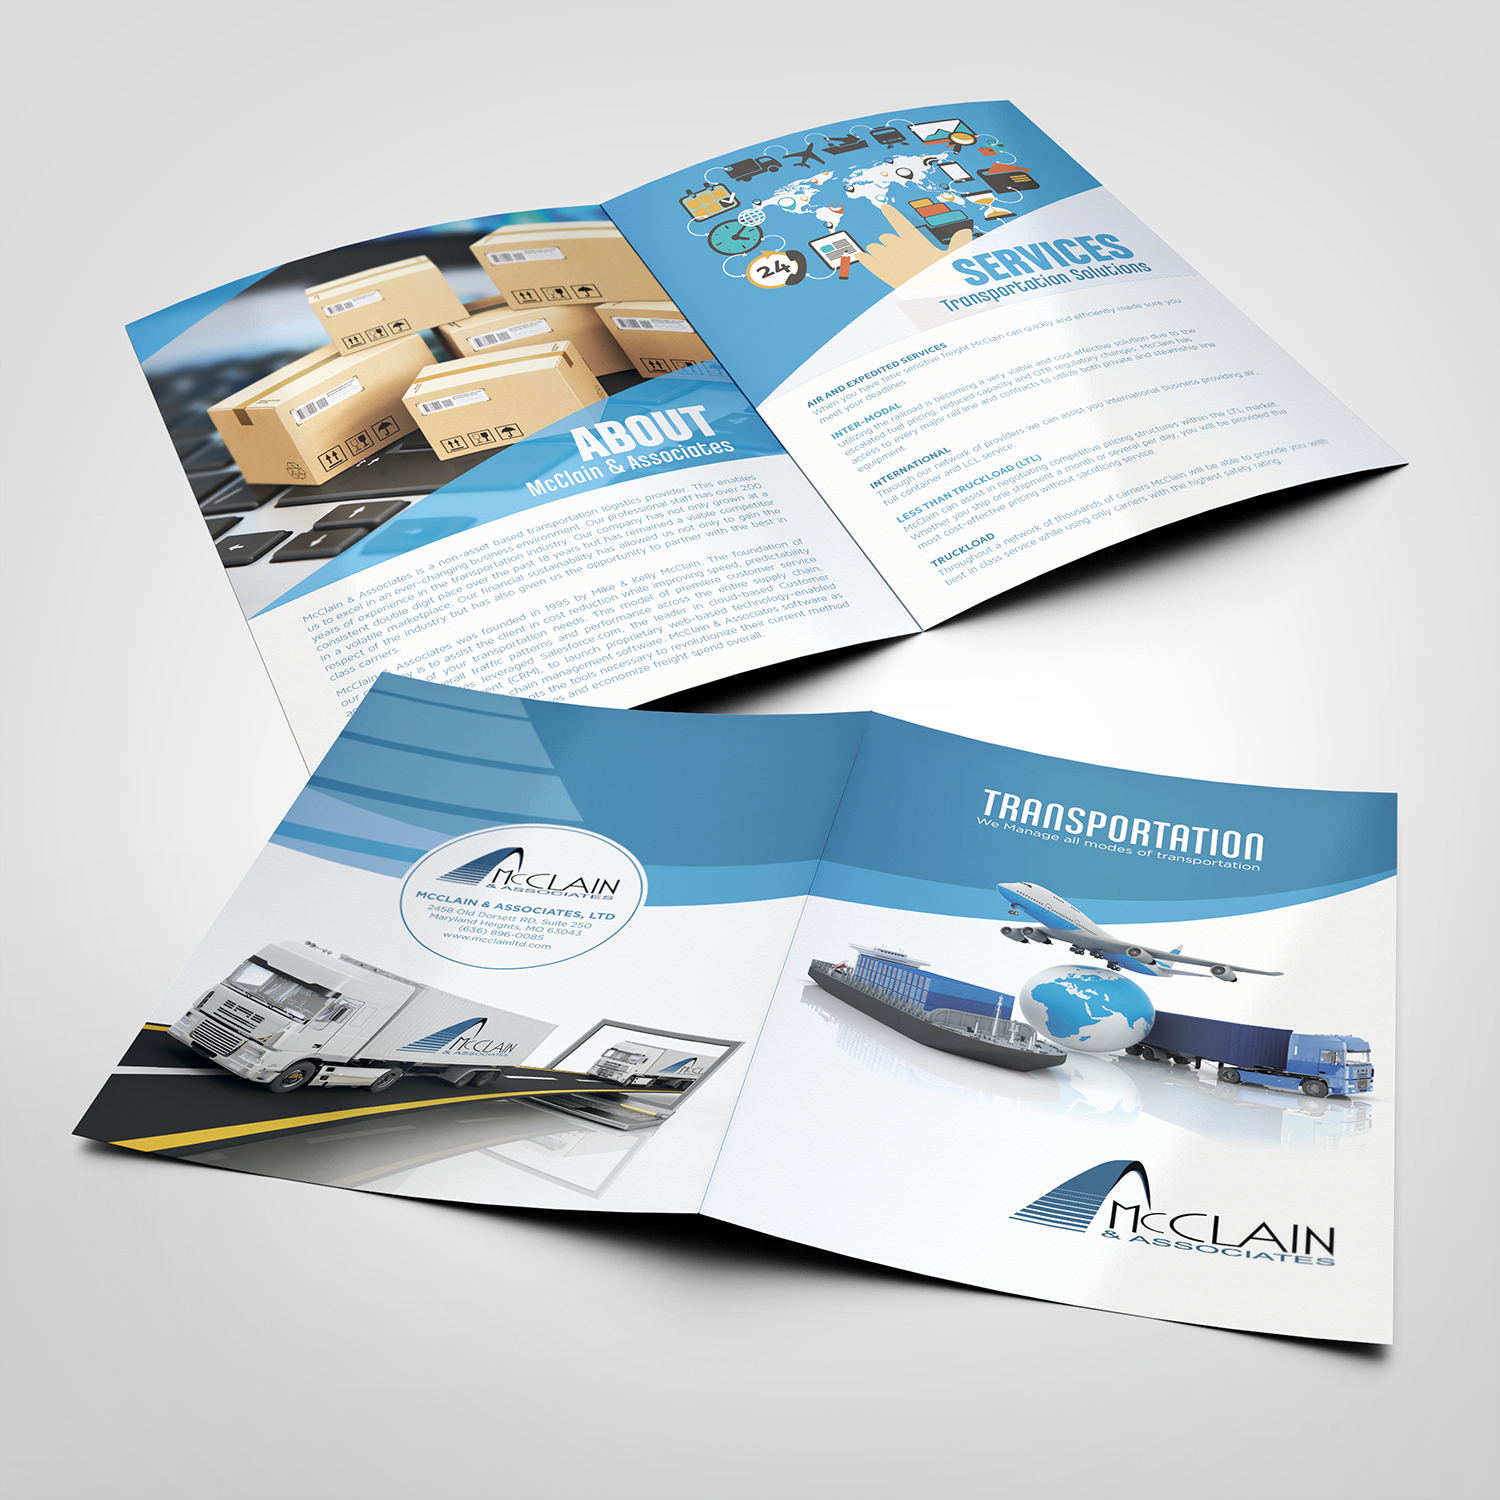 Elegant, Playful, Logistic Brochure Design for a Company by matteo